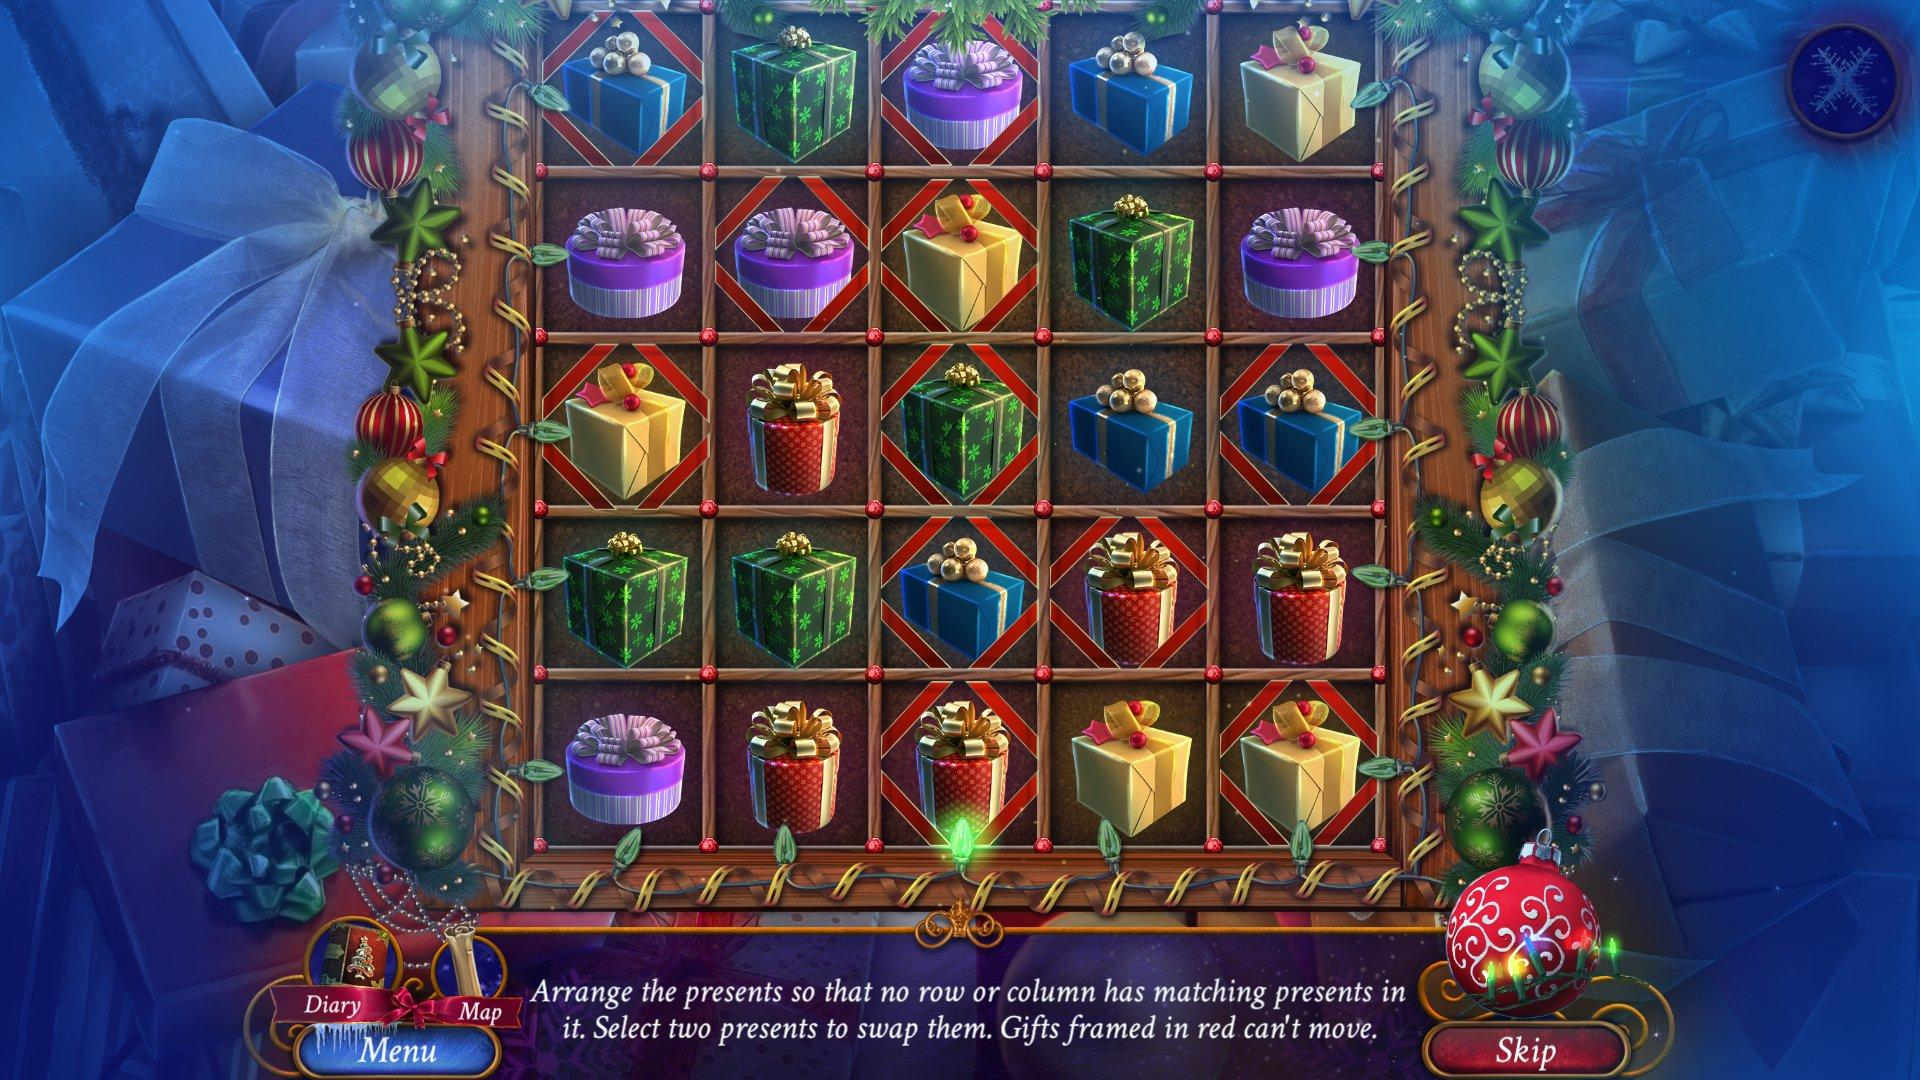 Yuletide legends: who framed santa claus download free pc